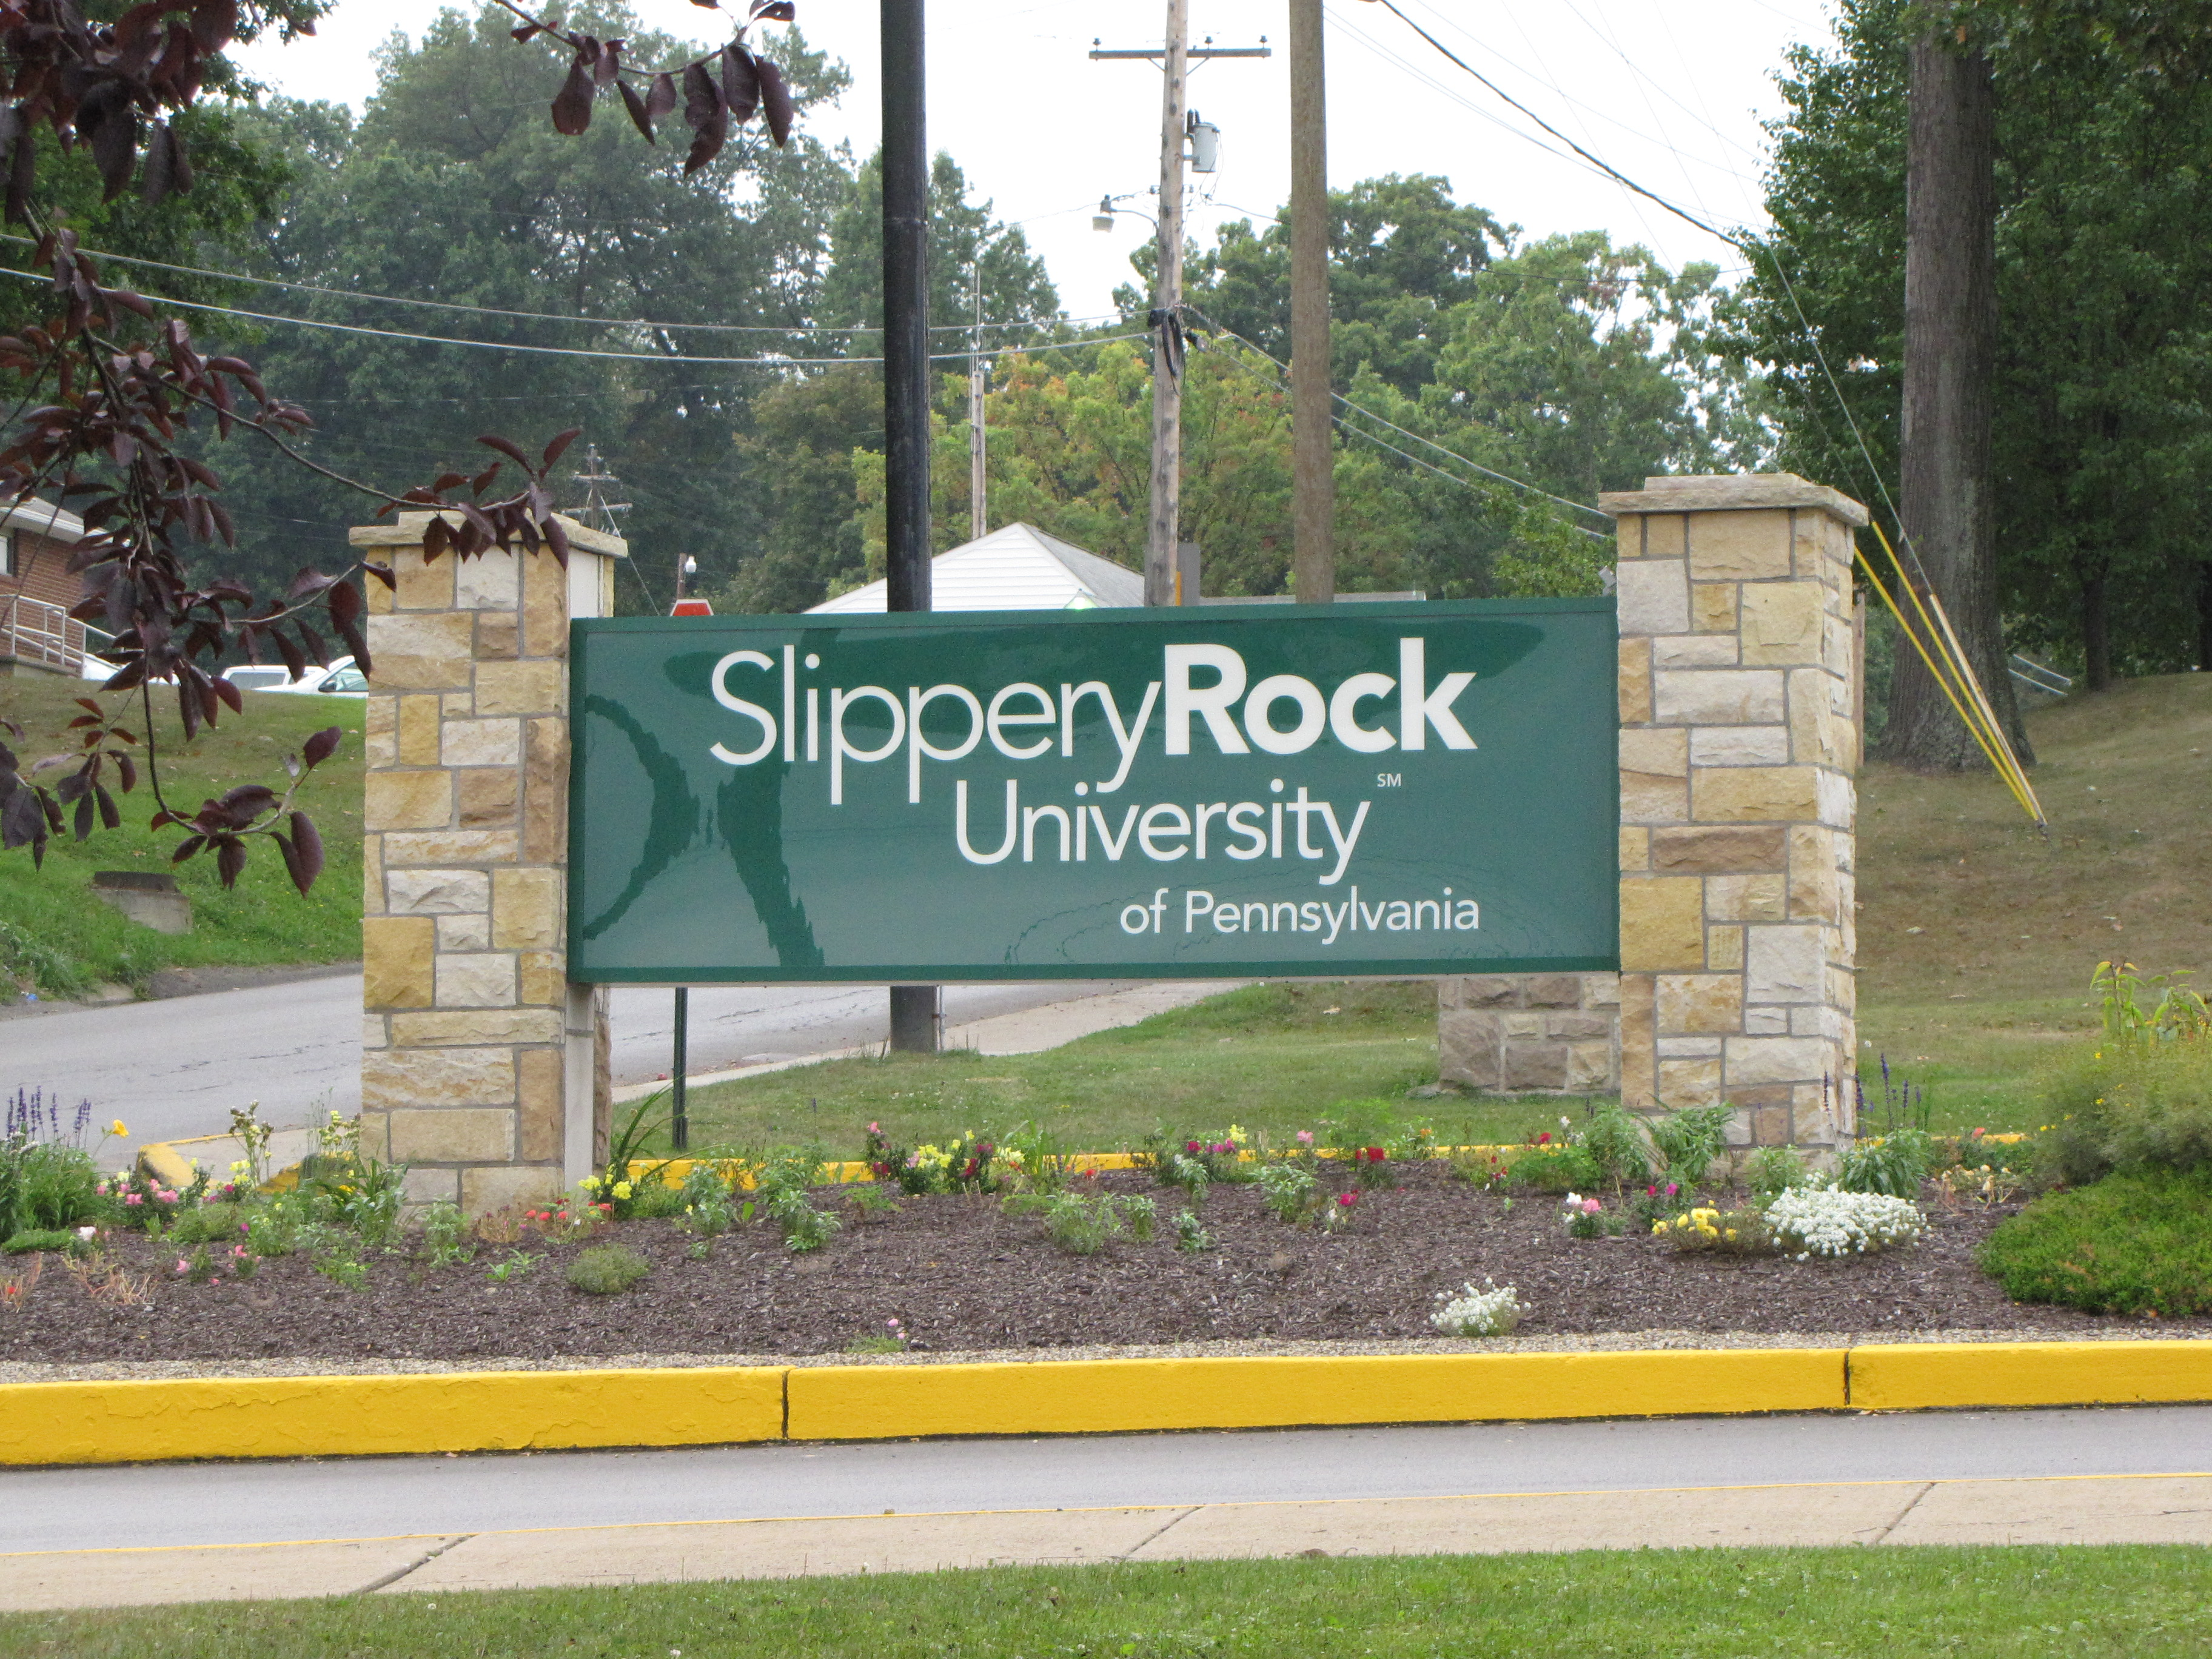 slippery rock dating site Like all first impressions, your profile or a personal page on the dating site is extremely important slippery rock online threesome problems need a date although these sites are fun to meet new people and get a good conversation.